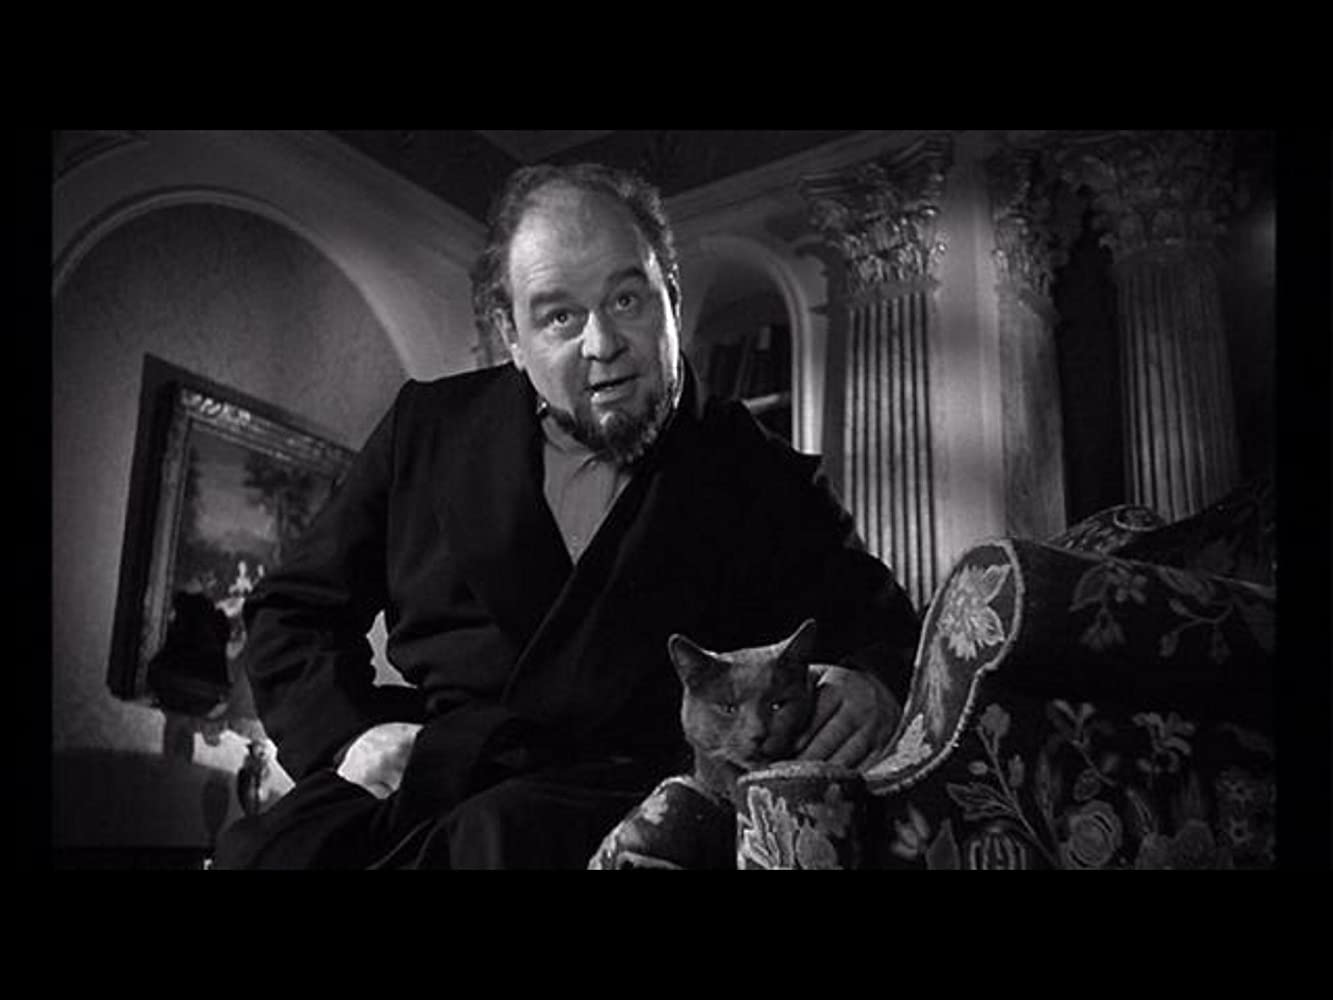 Niall MacGinnis in Night of the Demon (1957)